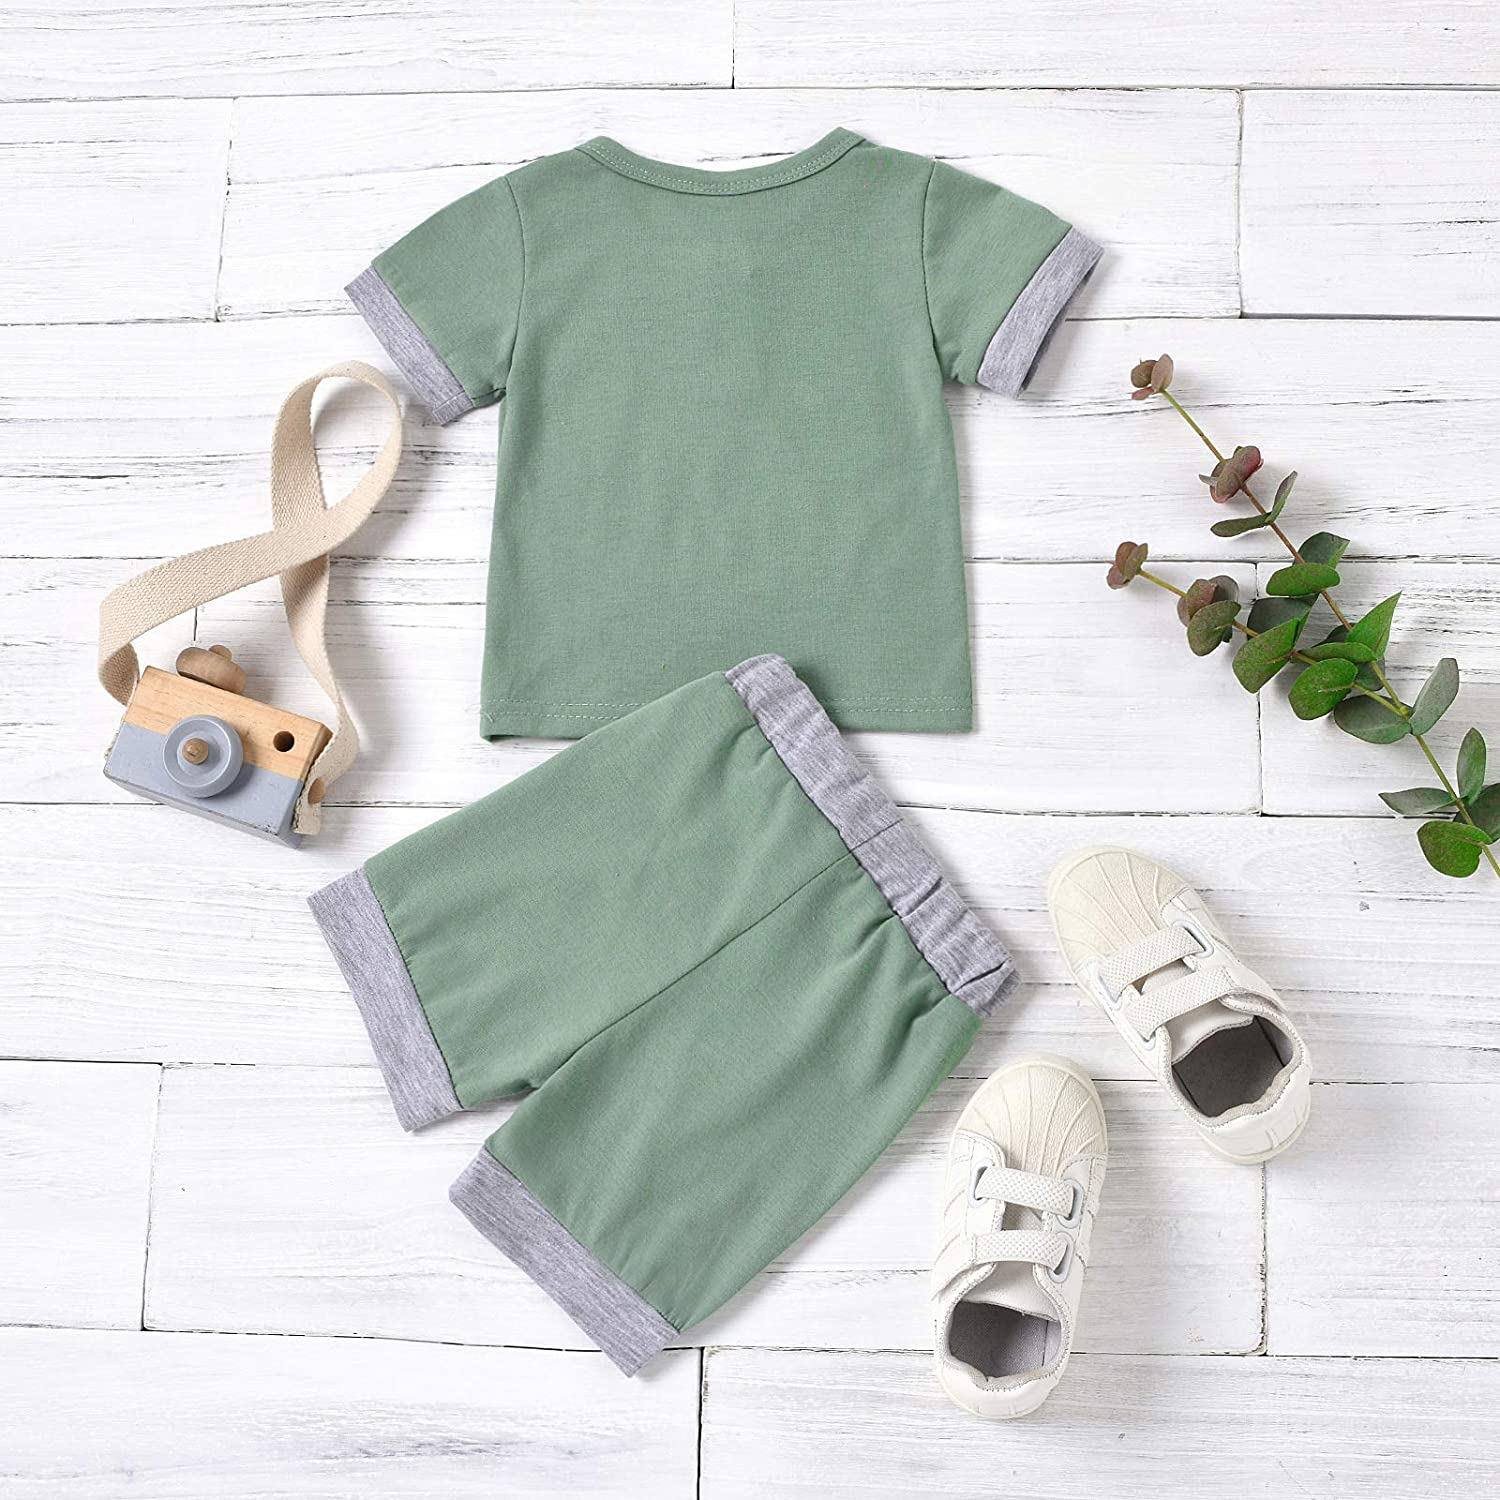 Infant Baby Boy Summer Clothes Short Sleeve Patchwork Crewneck T-Shirt Top and Shorts Set 2PCS Casual Outfits (Green